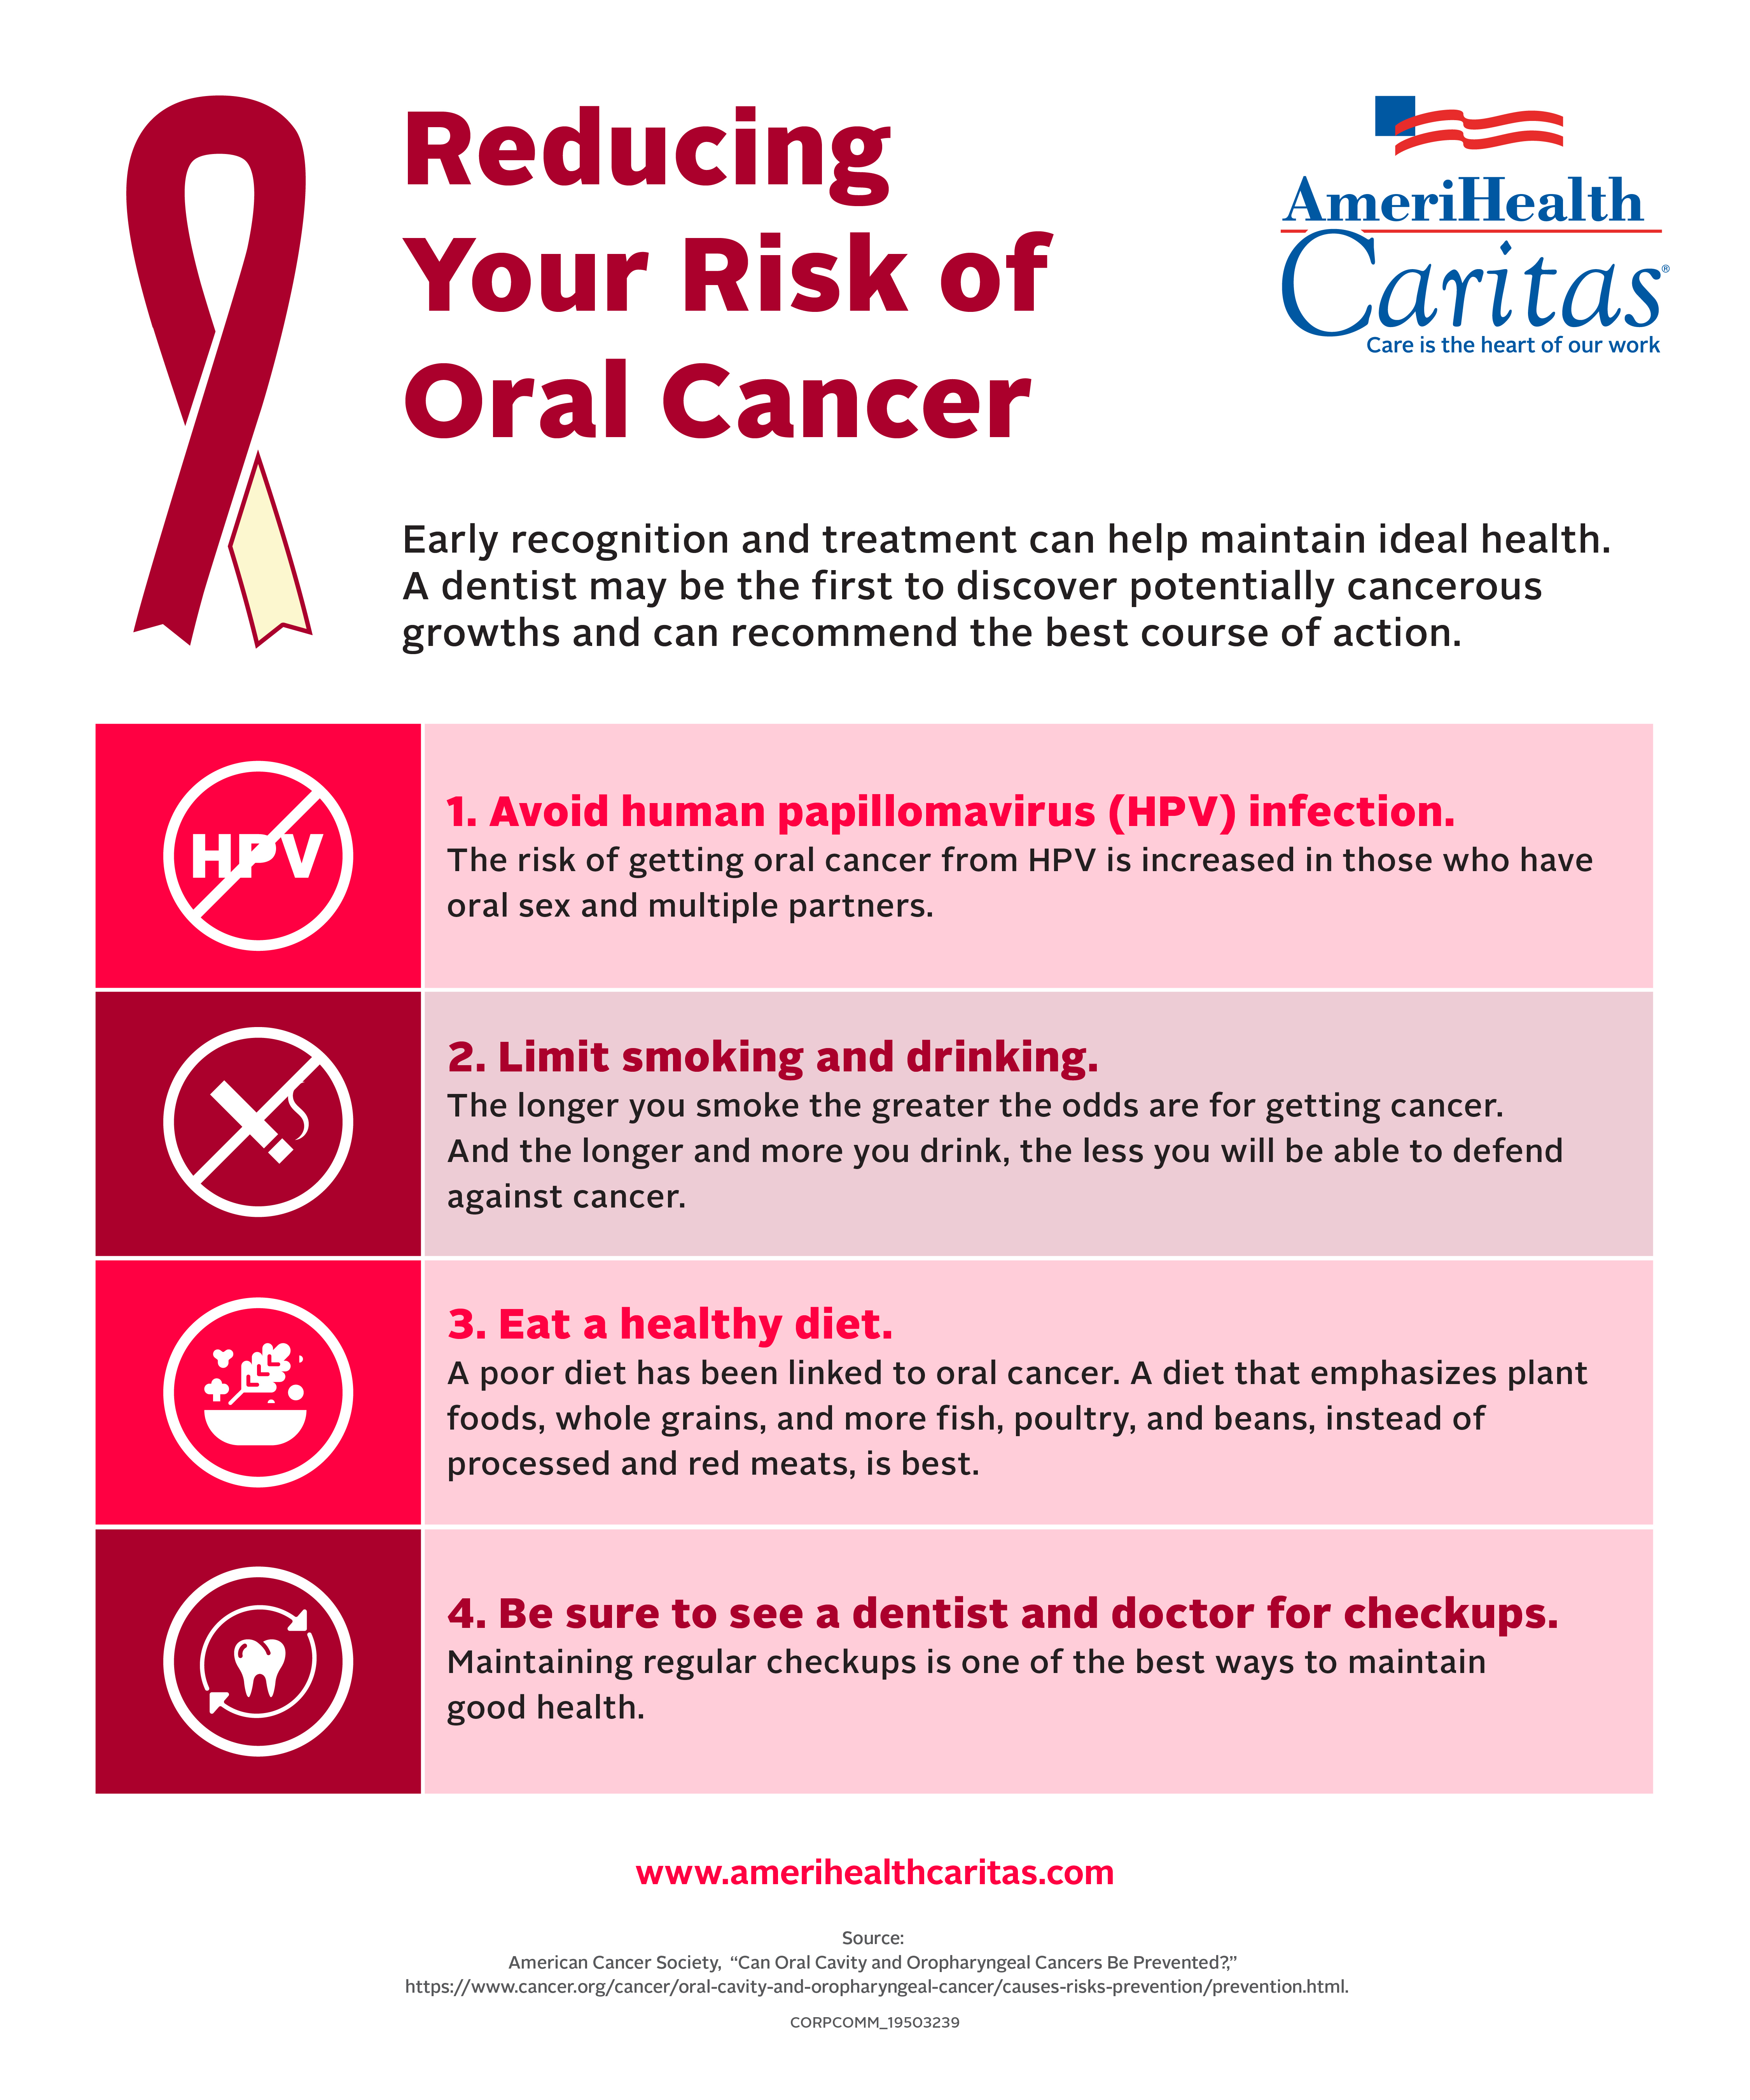 hpv and throat cancer link